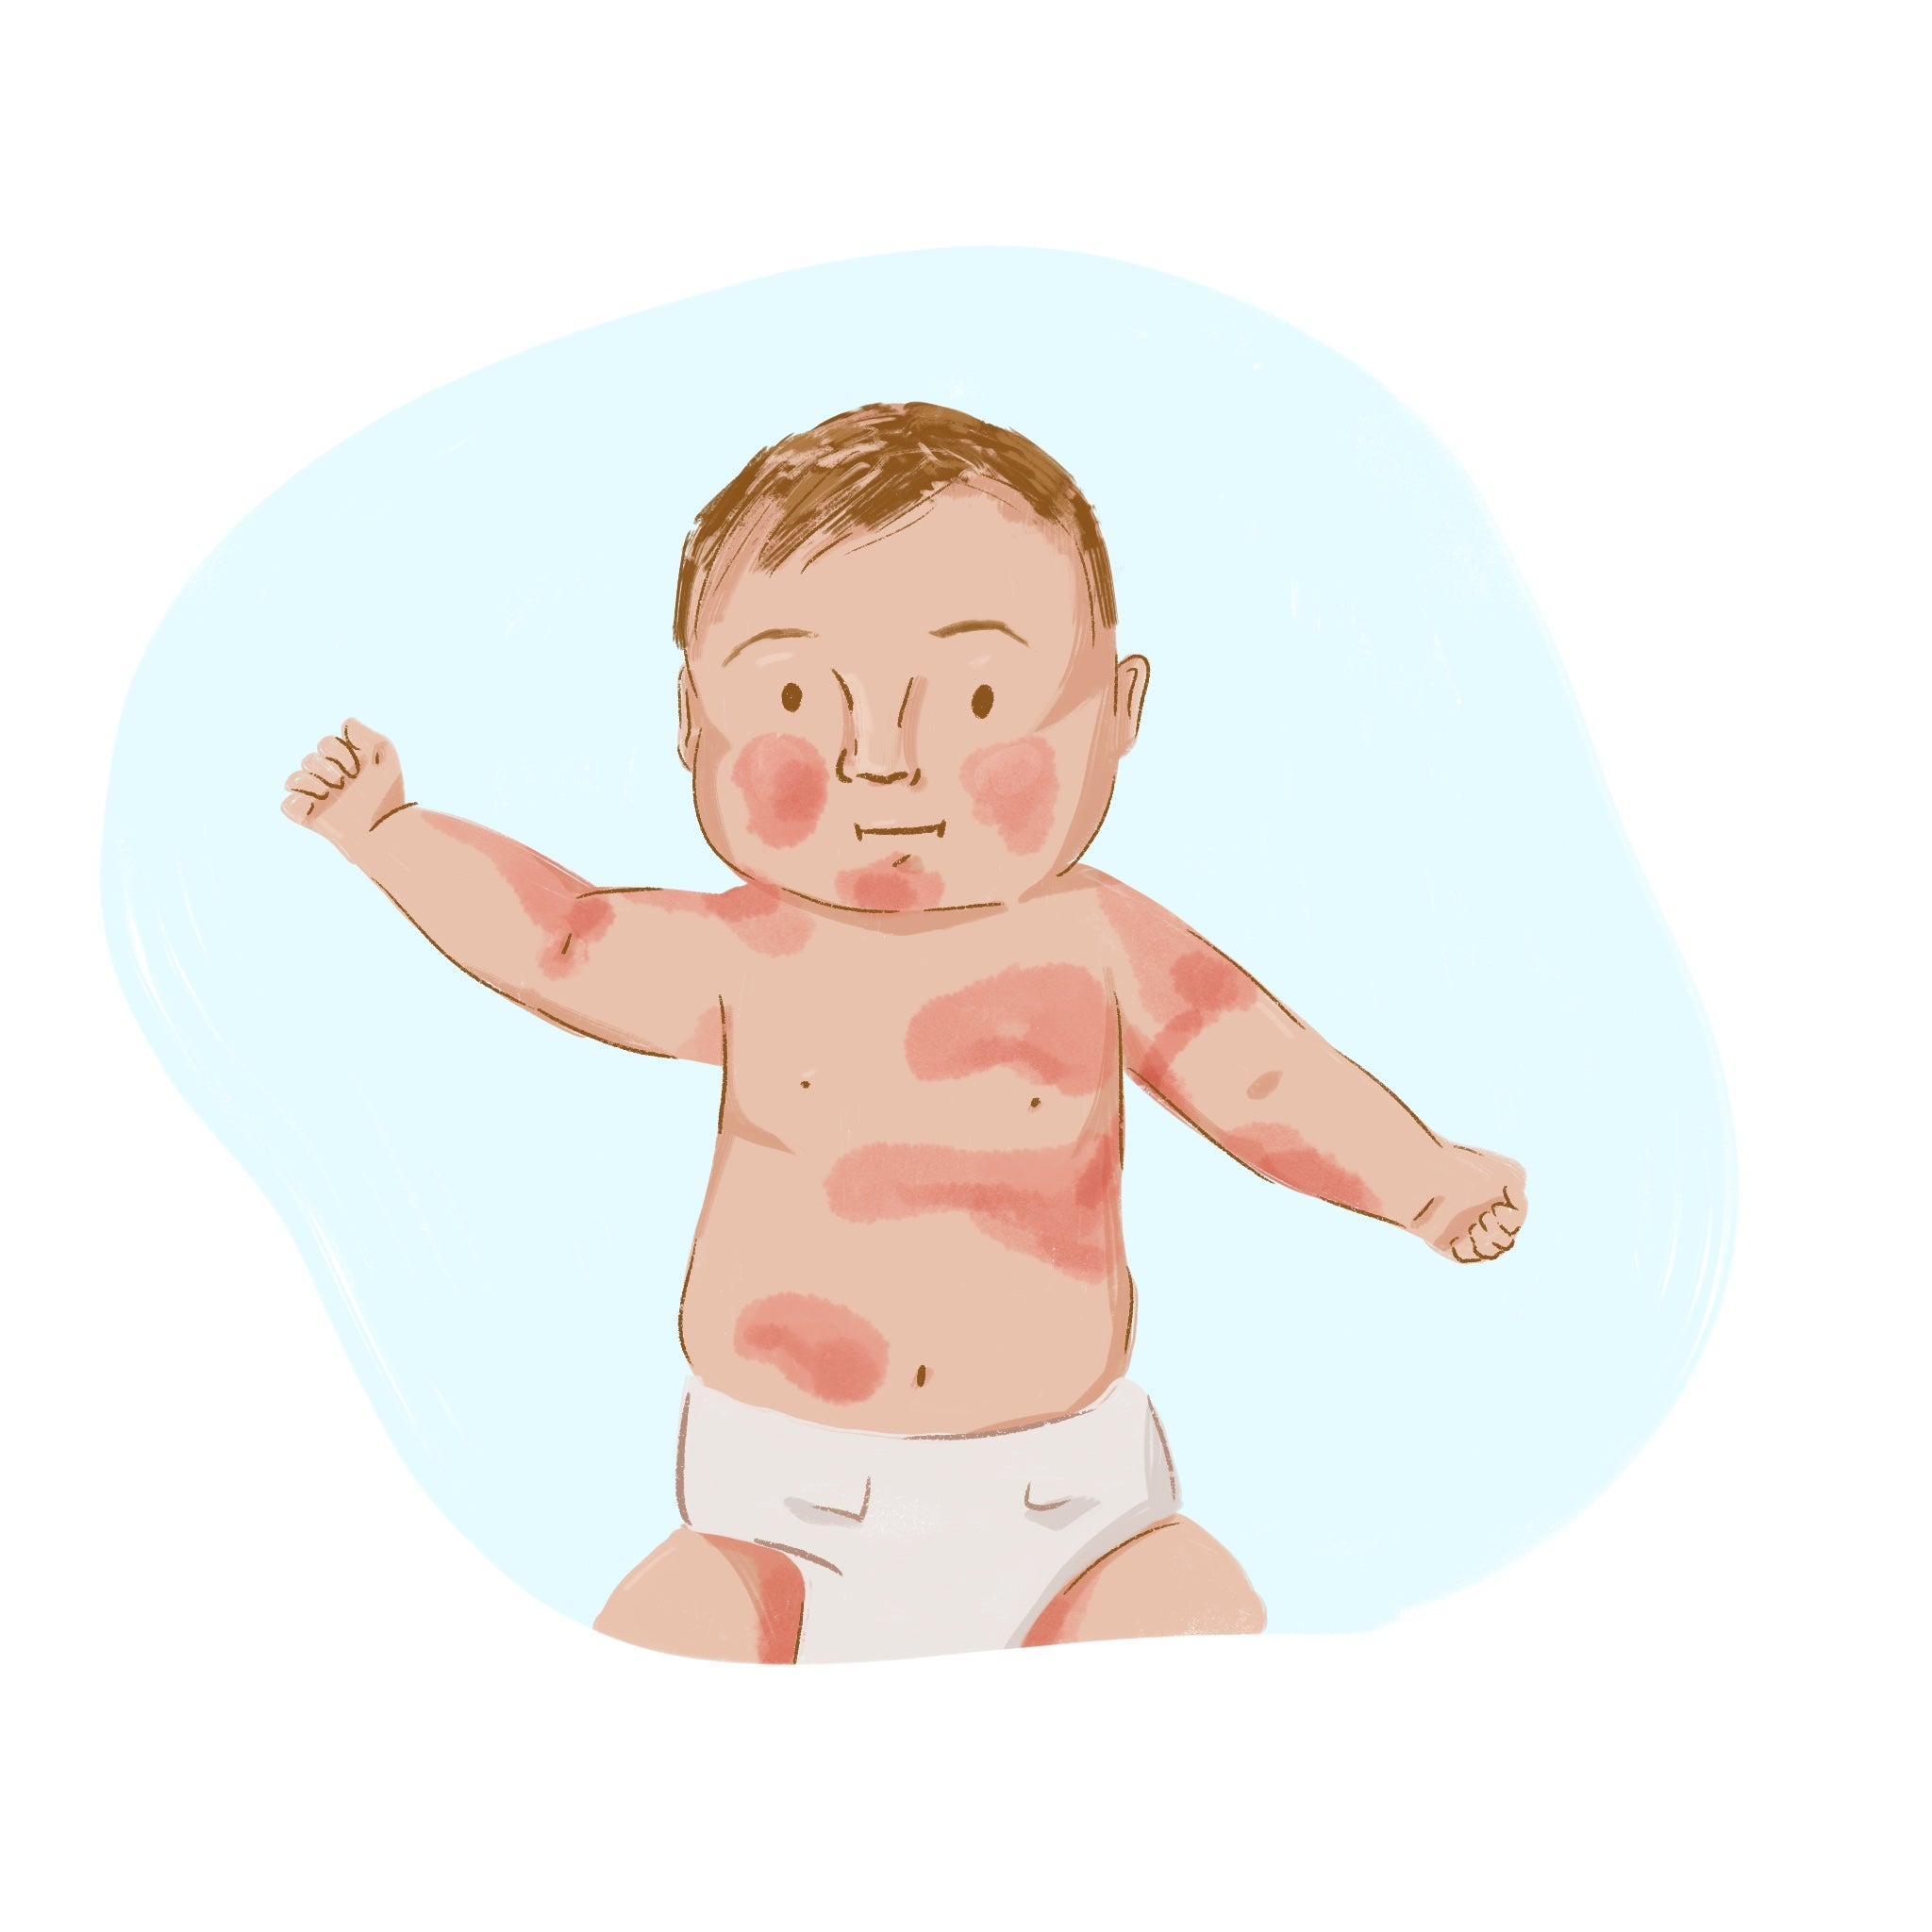 baby with eczema on face and in elbows